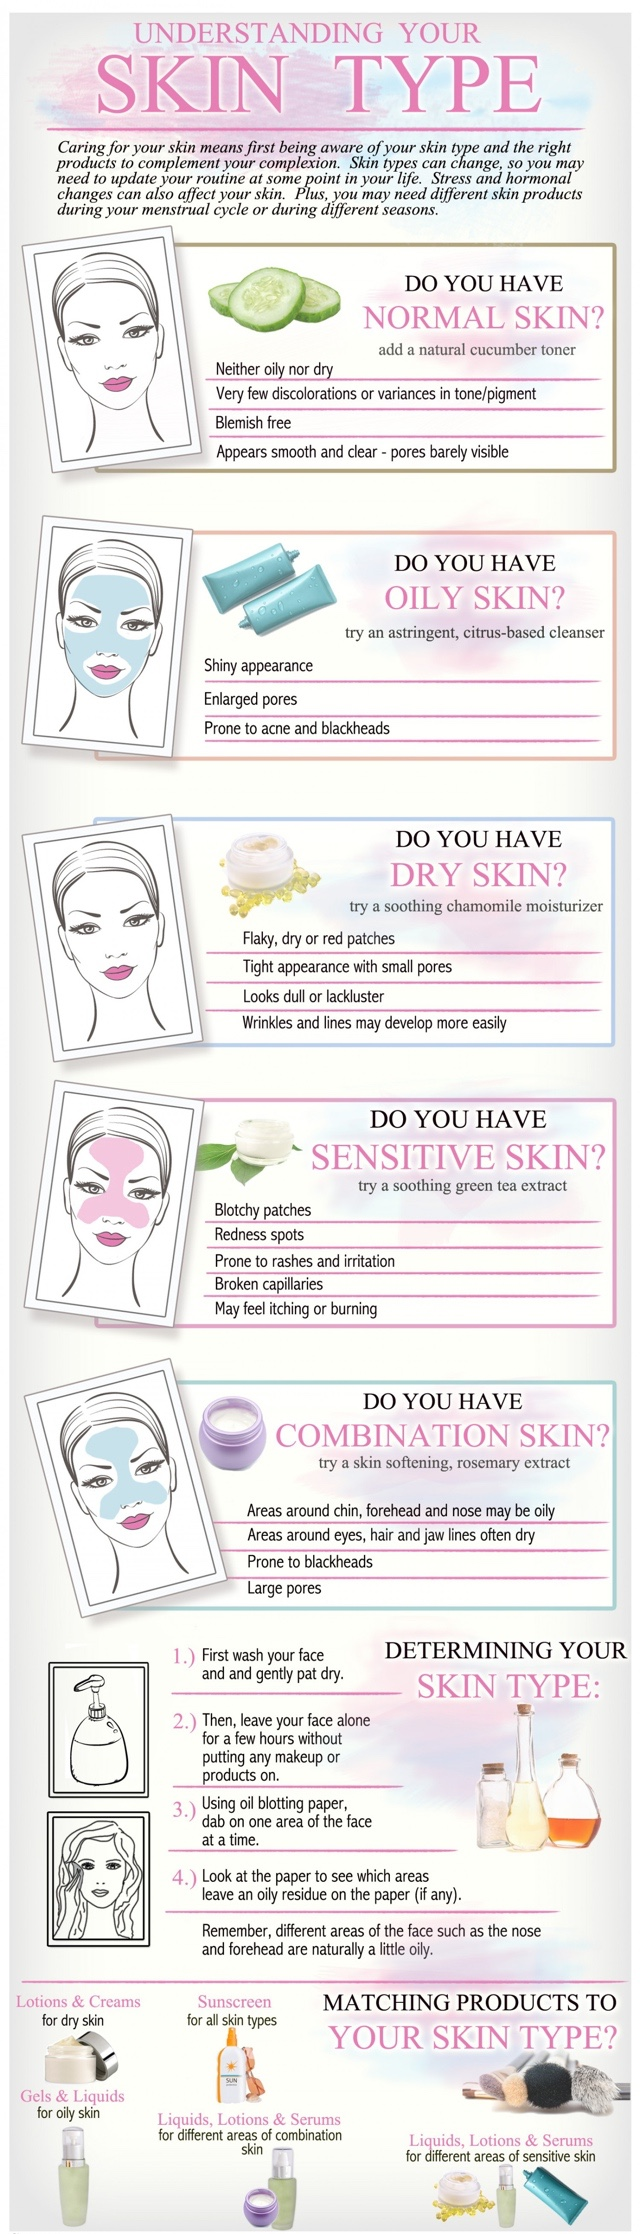 understanding your skin type 2